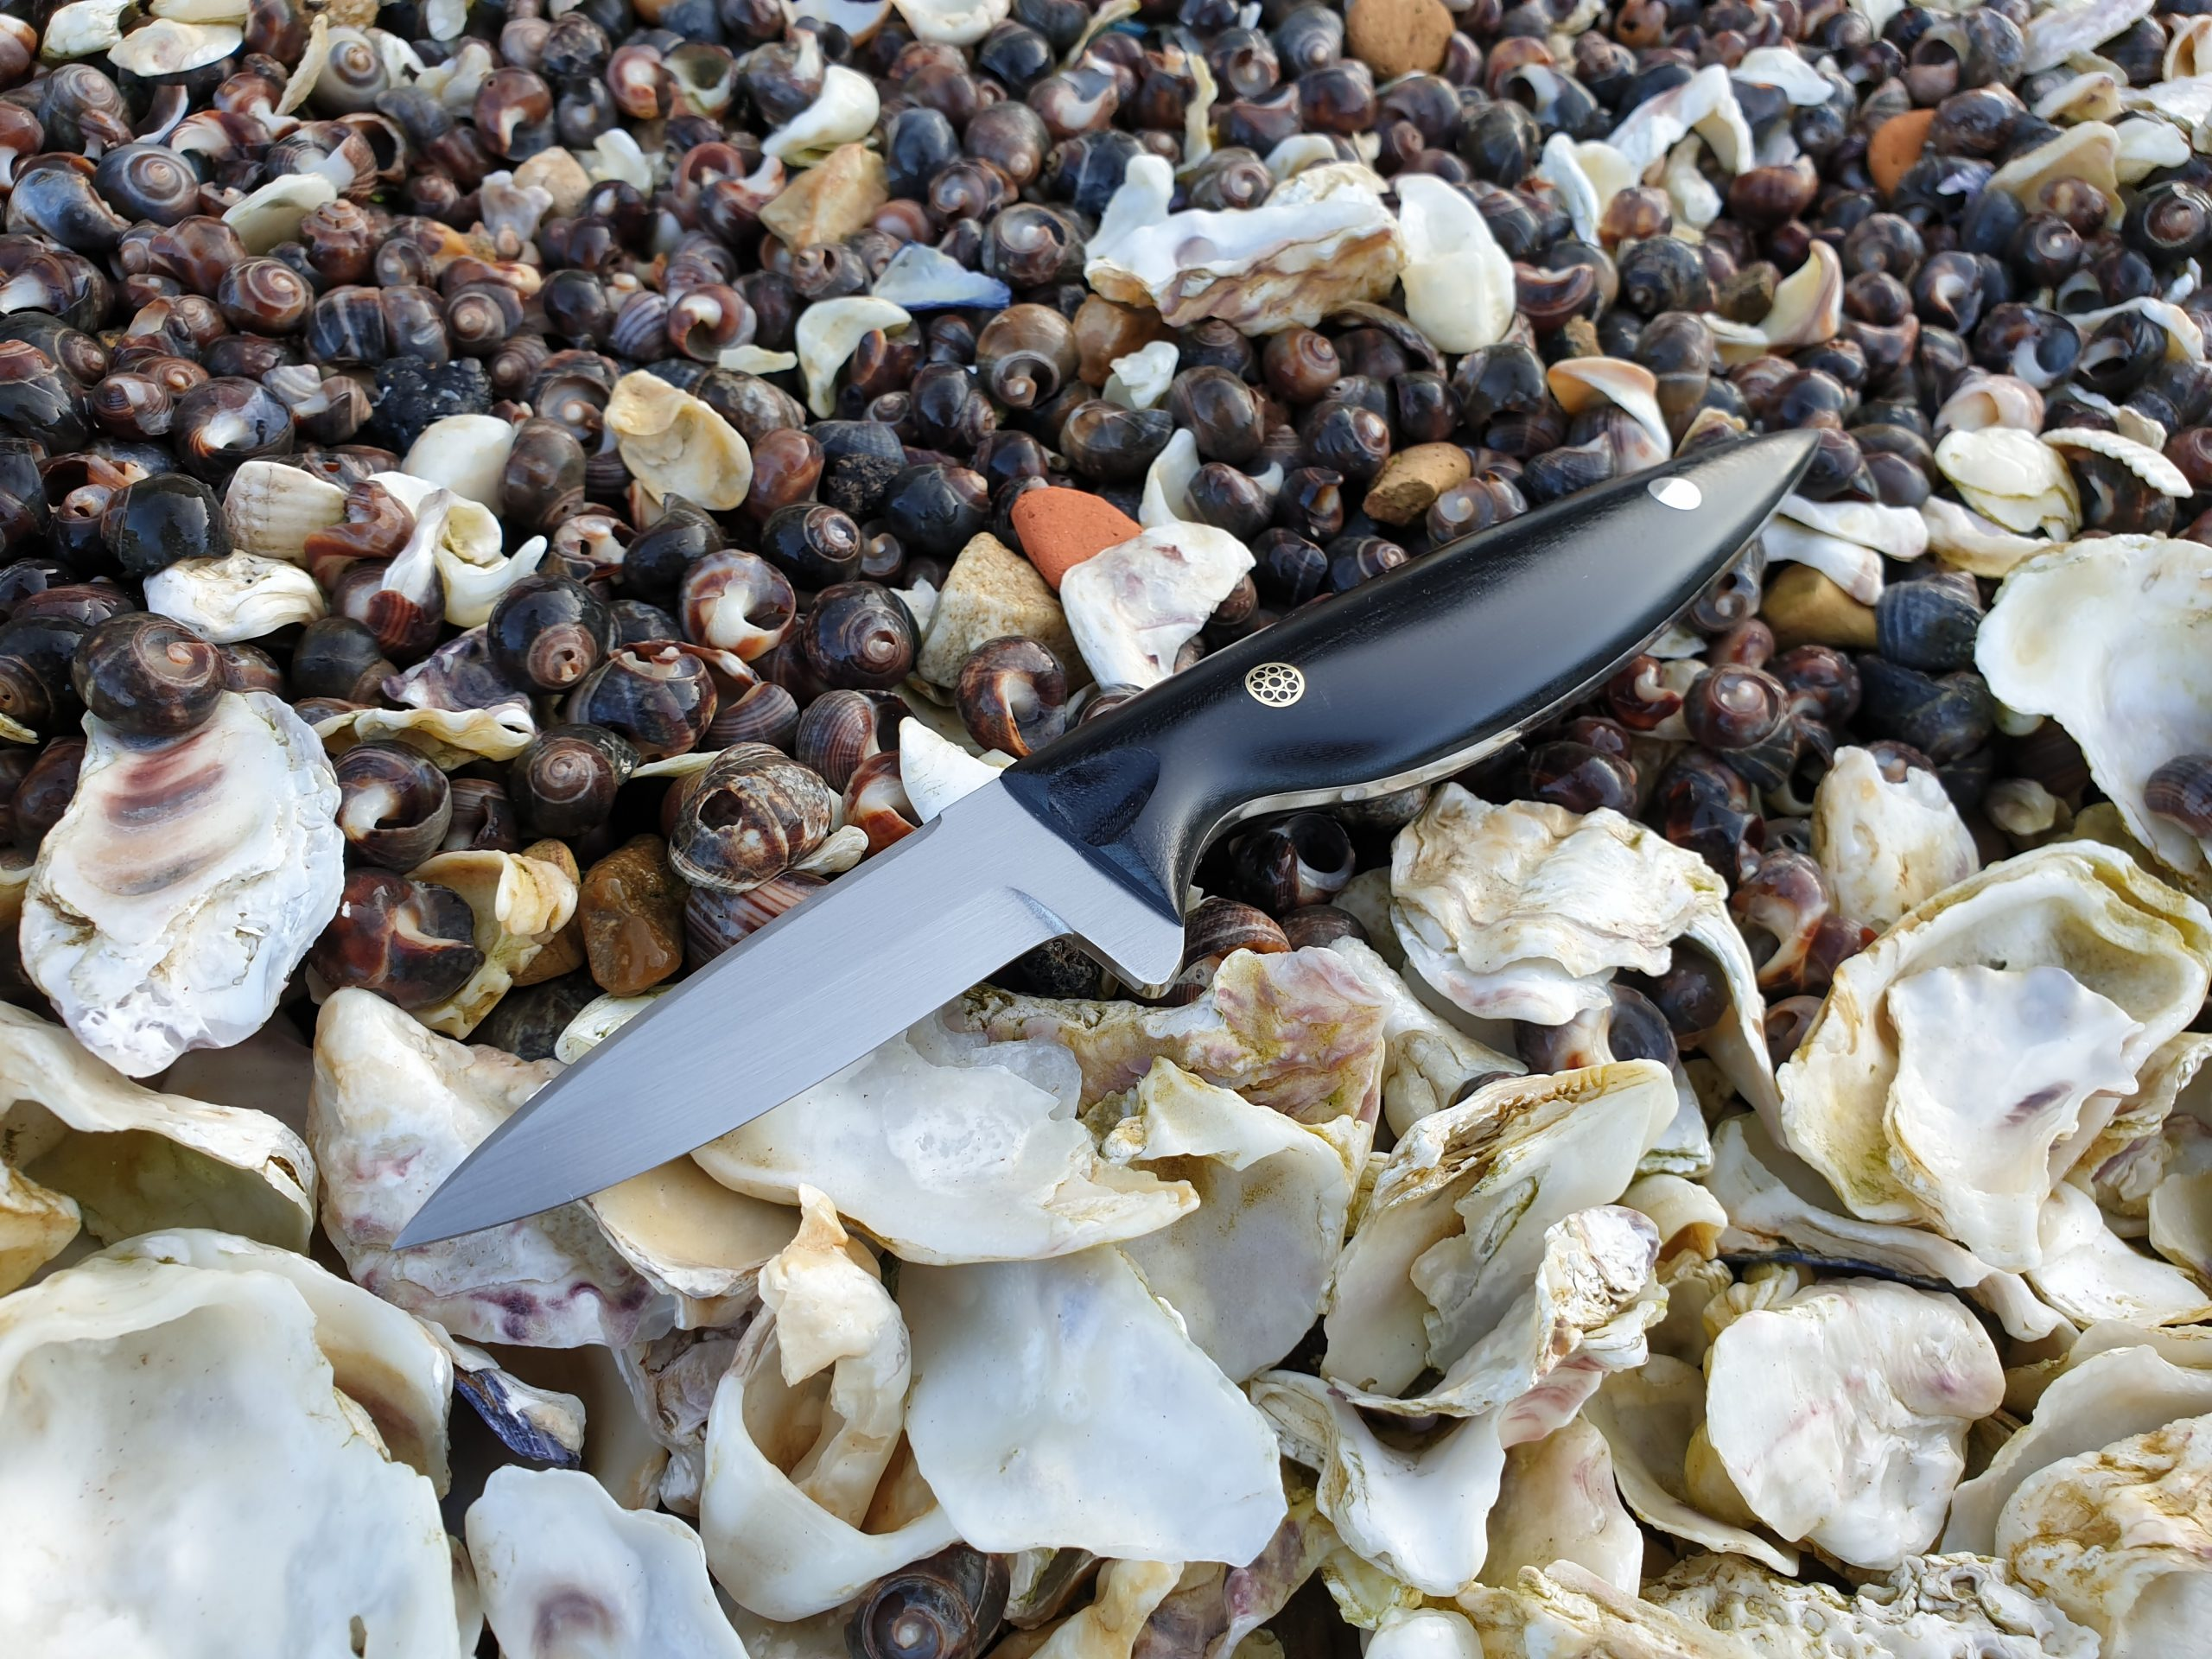 The Pearl oyster shucker with polished composite handles on top of oyster and other seashells.